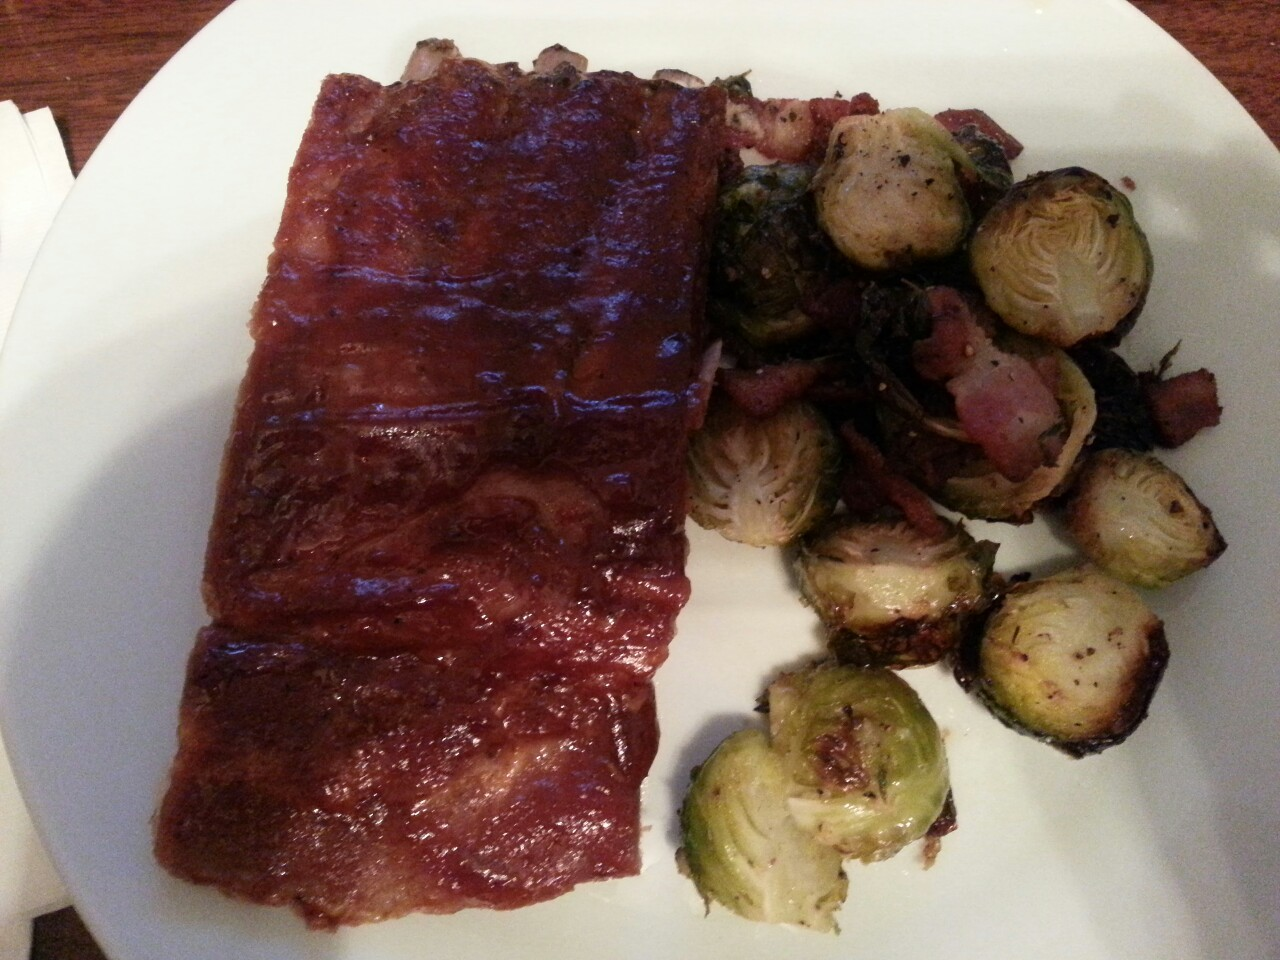 Dinner's on! Pork ribs and brussels sprouts with bacon.